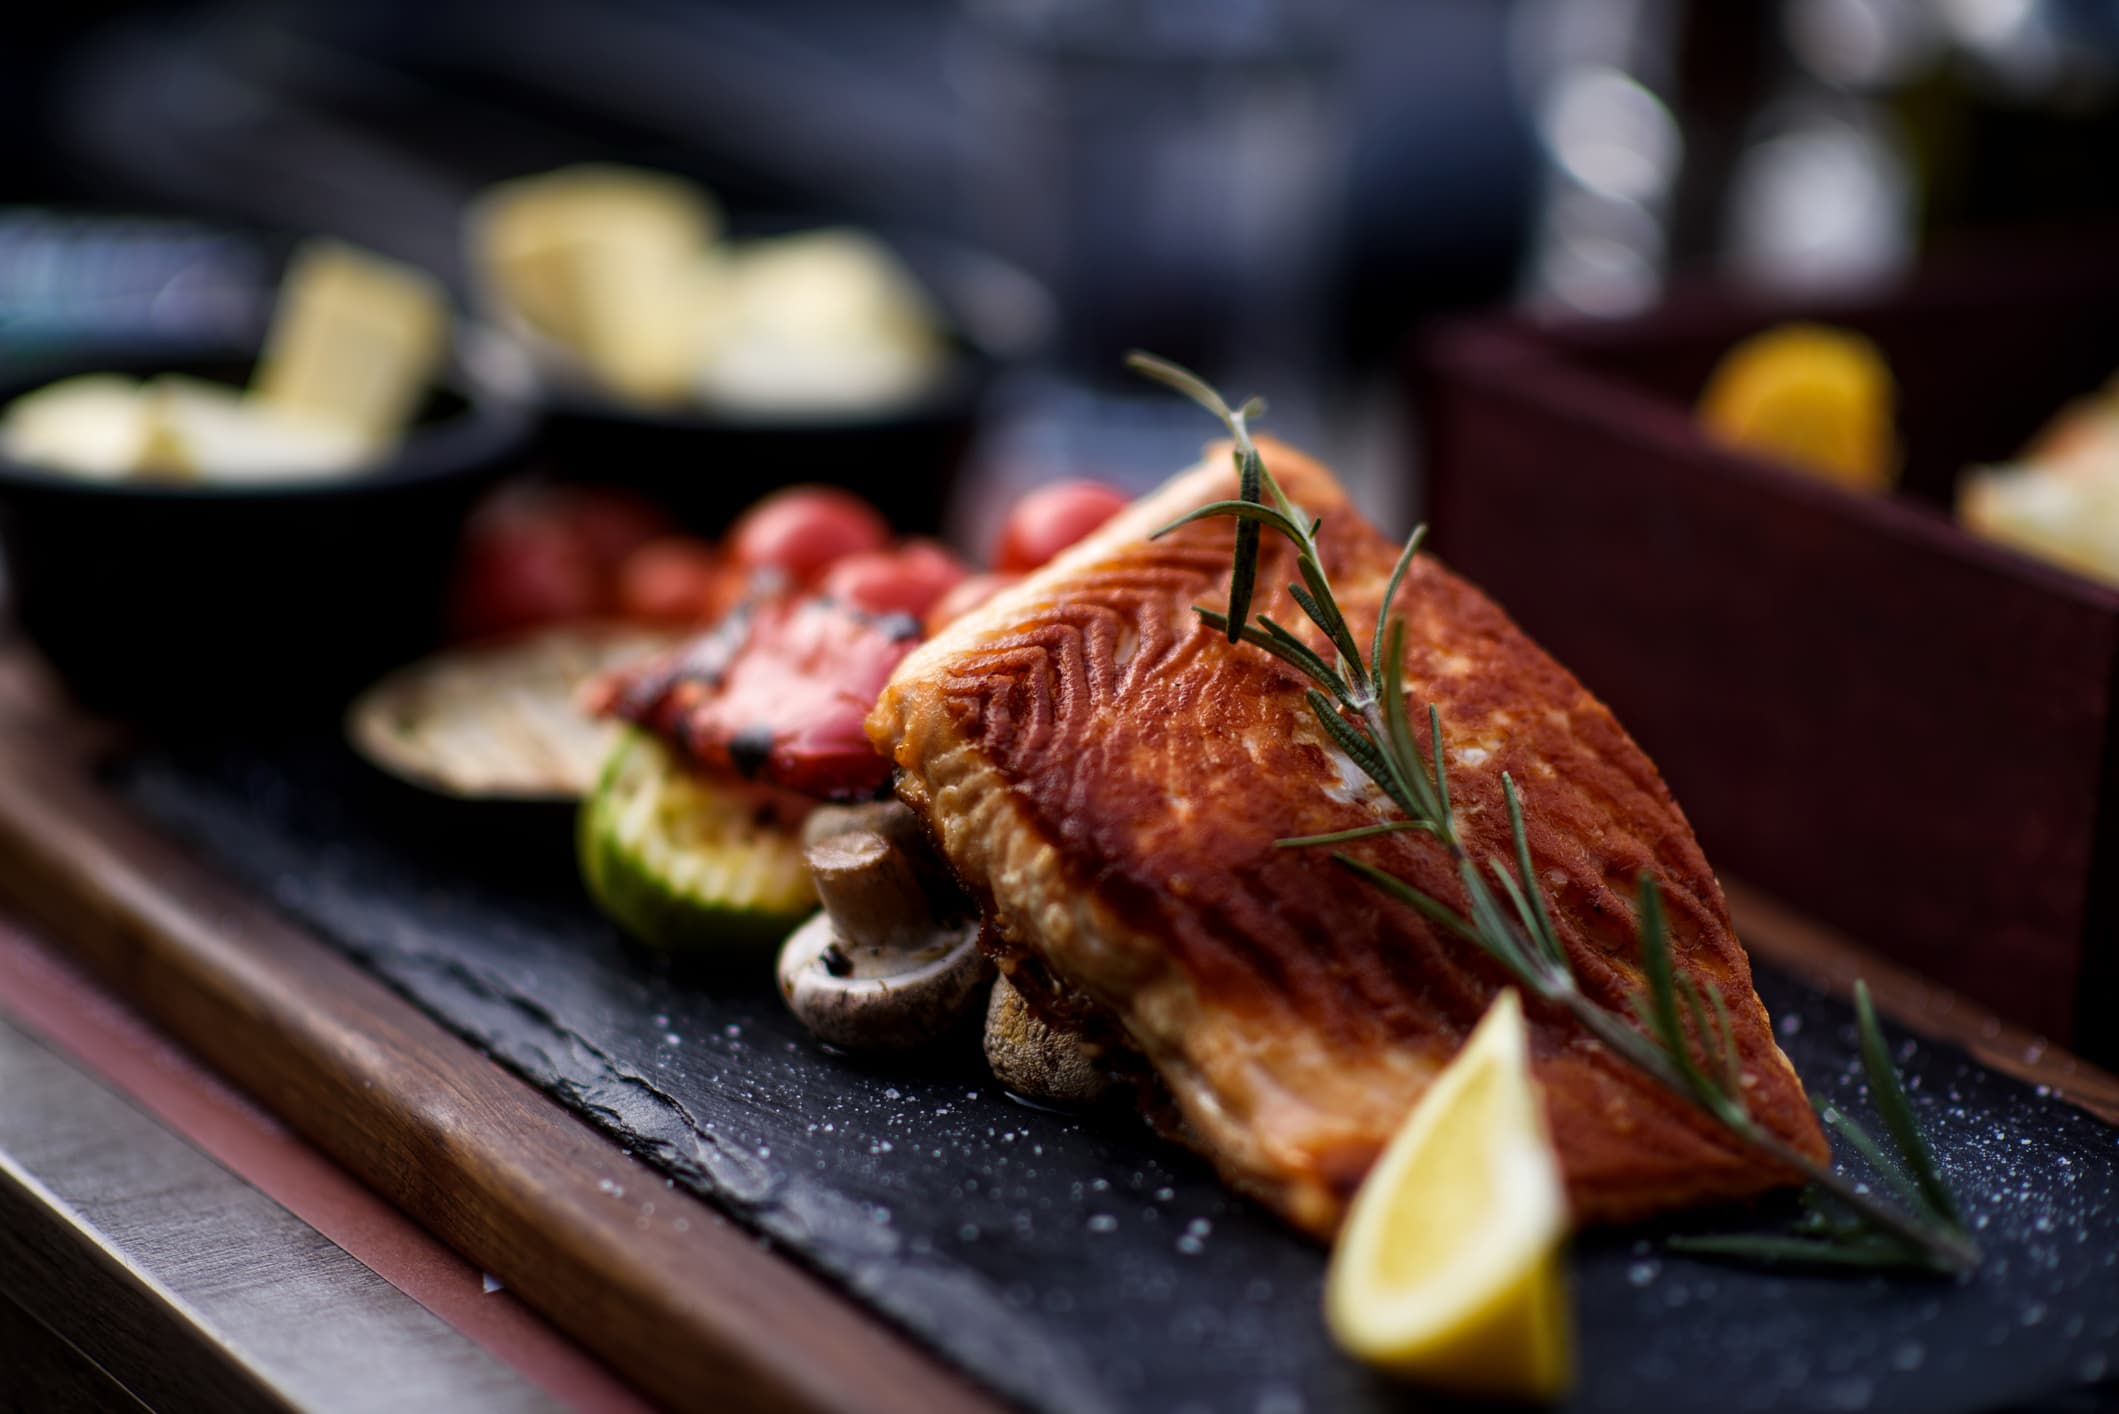 Grilled salmon on a grill